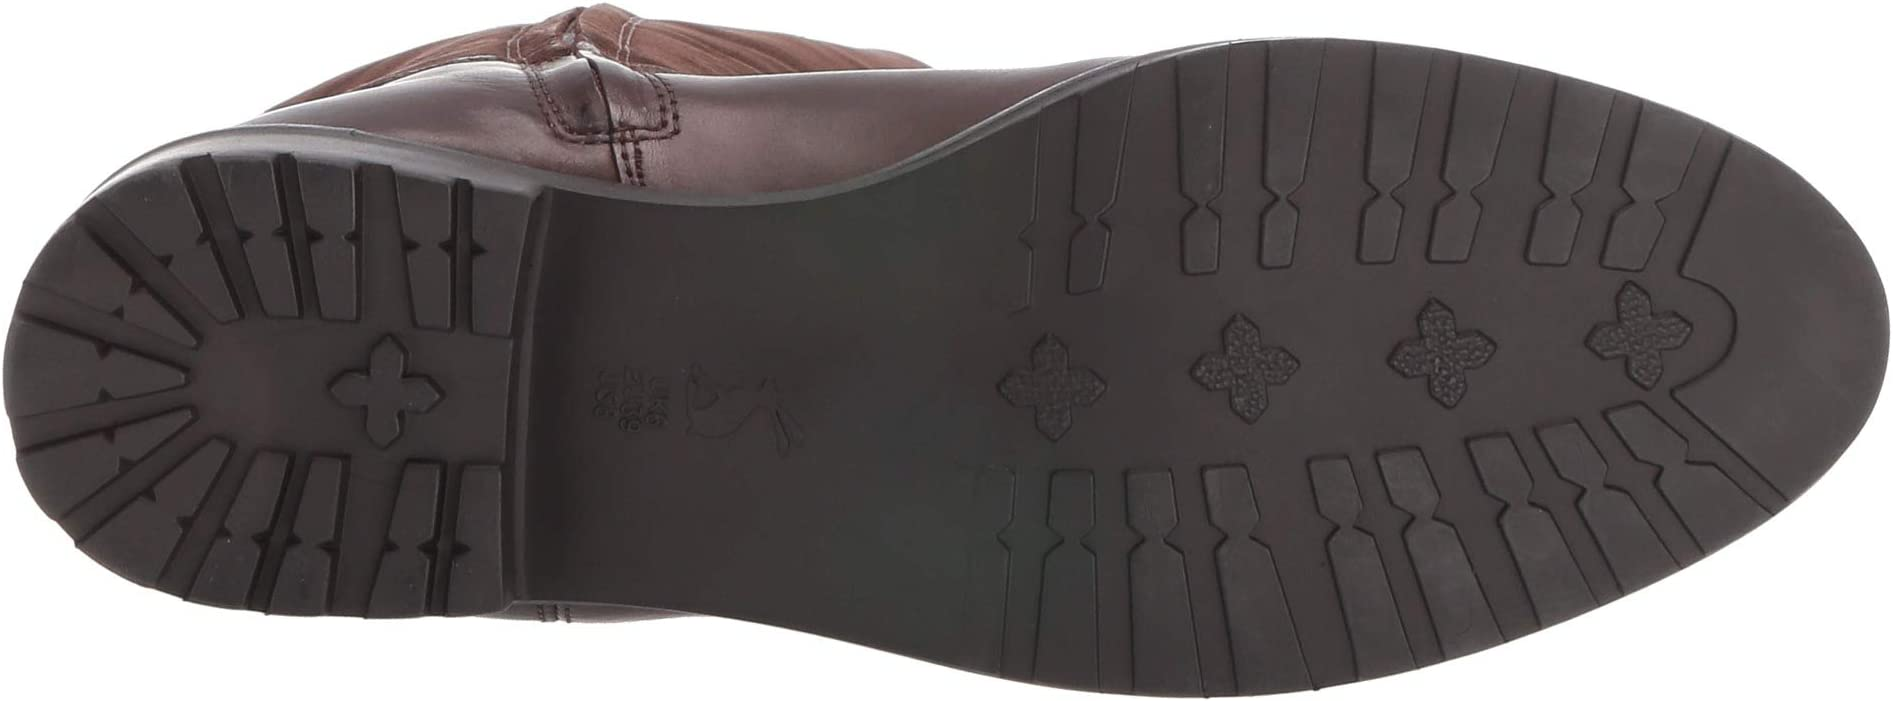 Joules Canterbury | Women's shoes | 2020 Newest